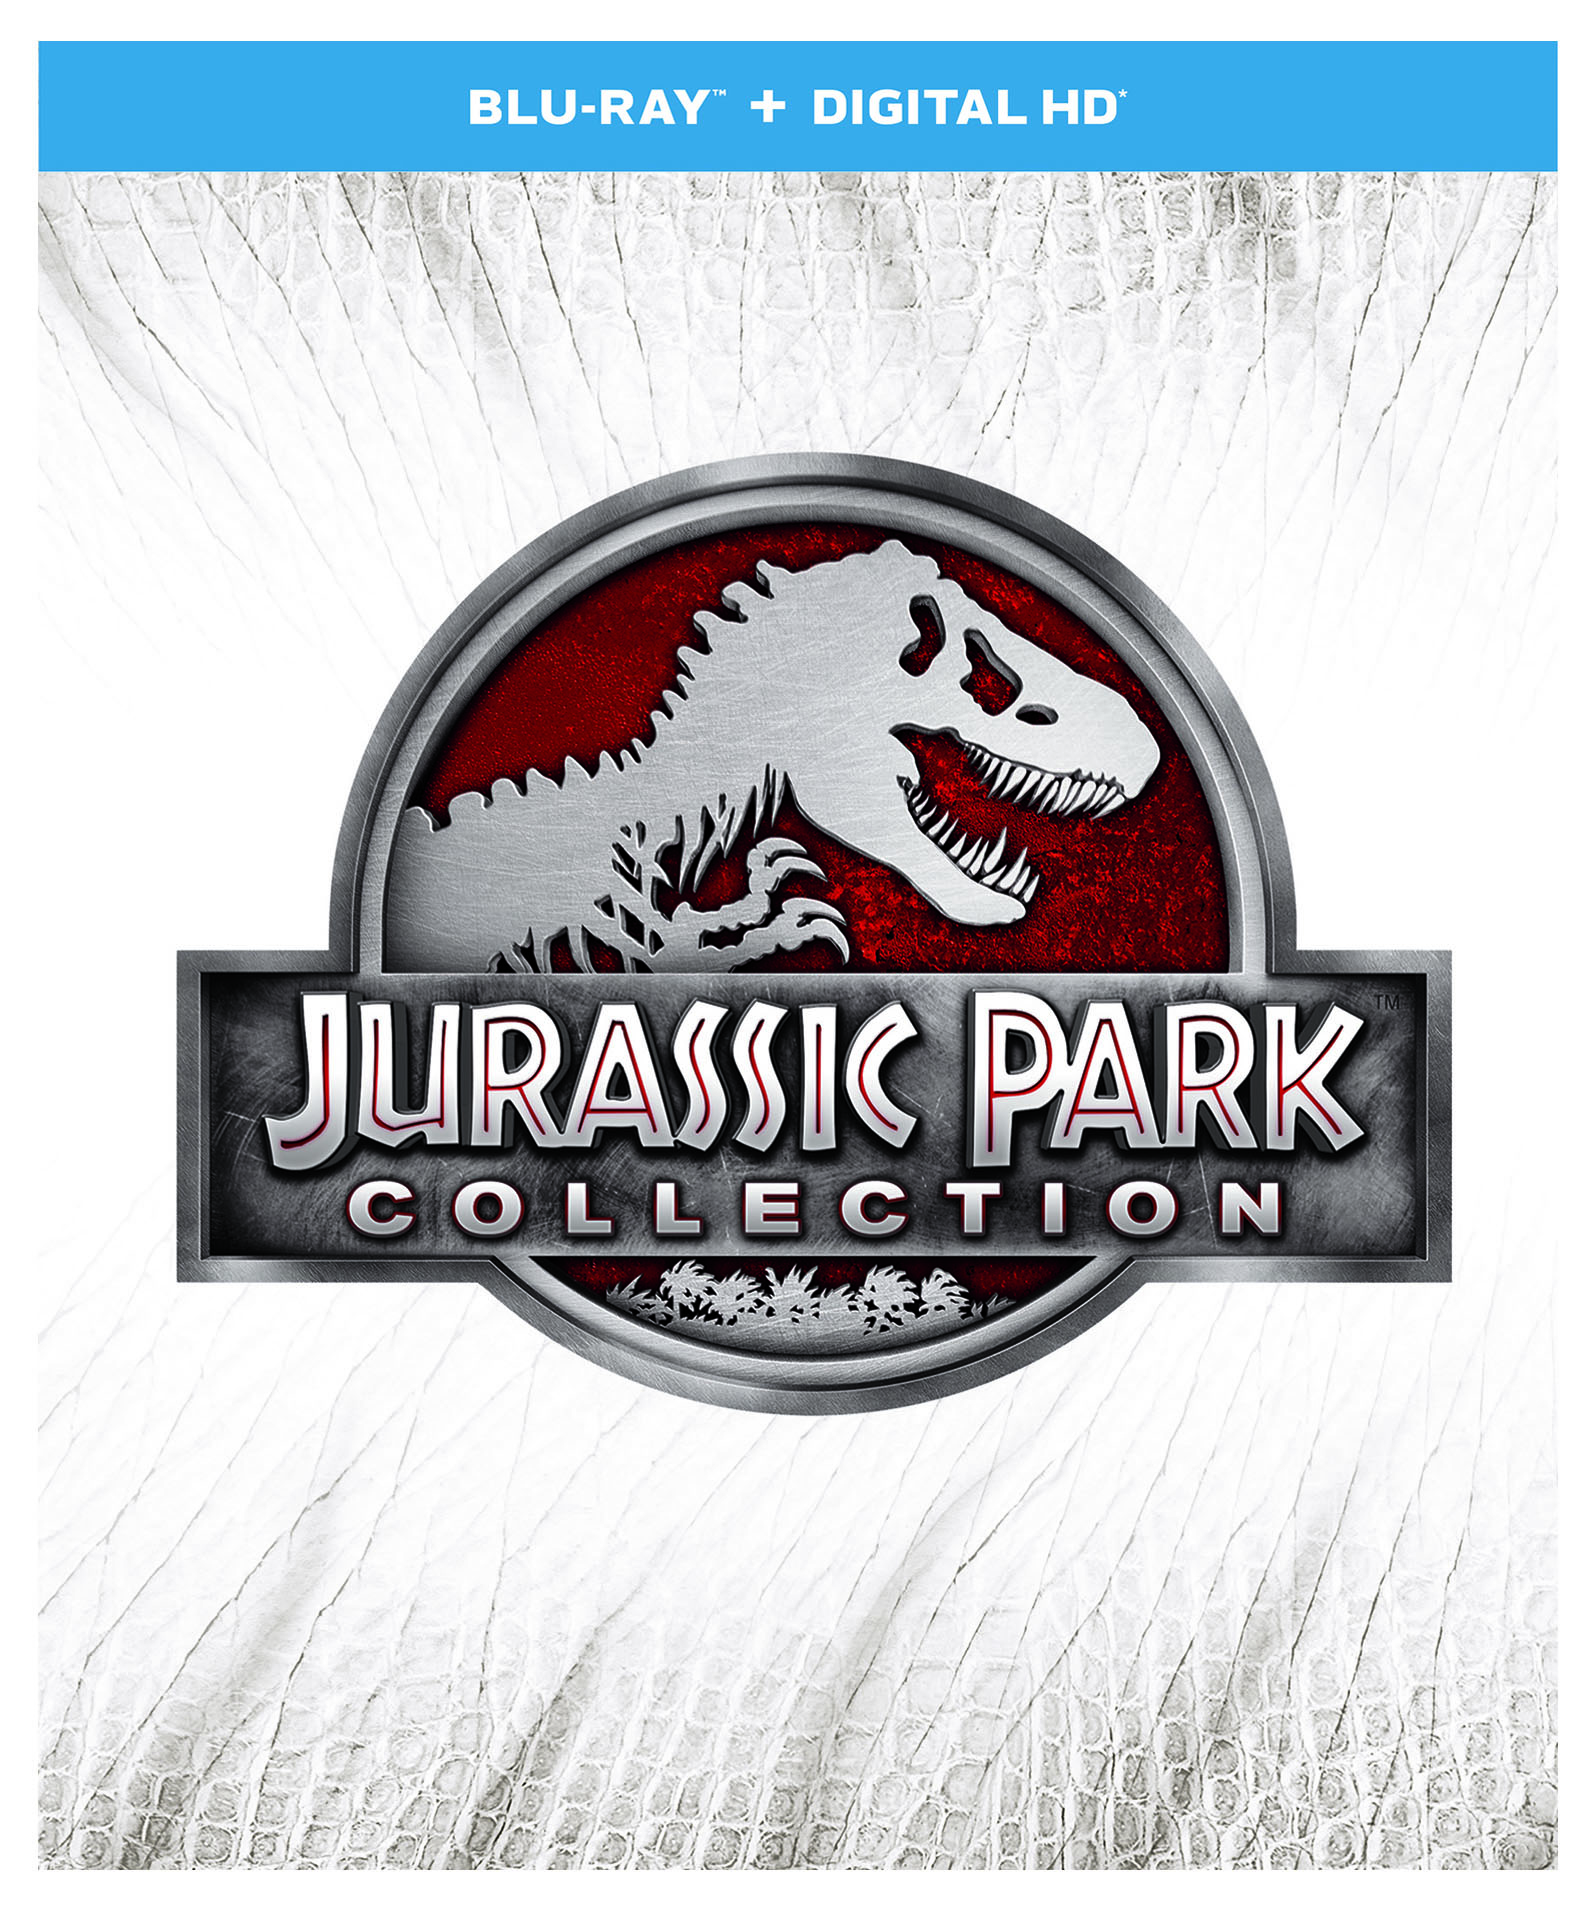 Jurassic Park Collection (Blu-ray + Digital HD) by Universal